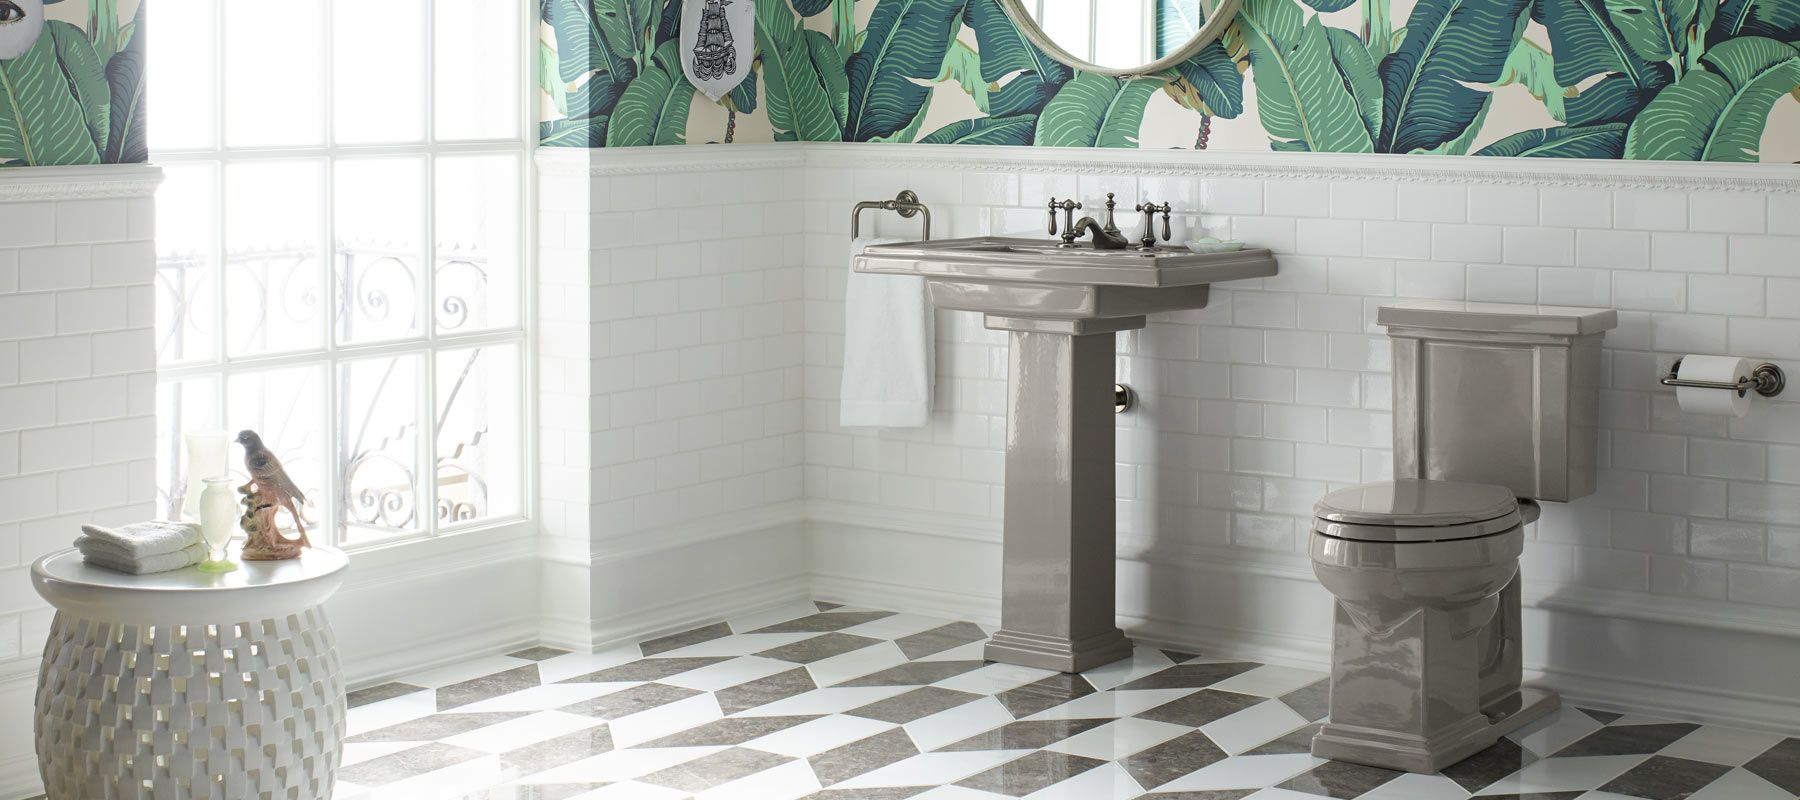 Wet Rooms- How They Can Increase the Value of Any Home in Sydney ...